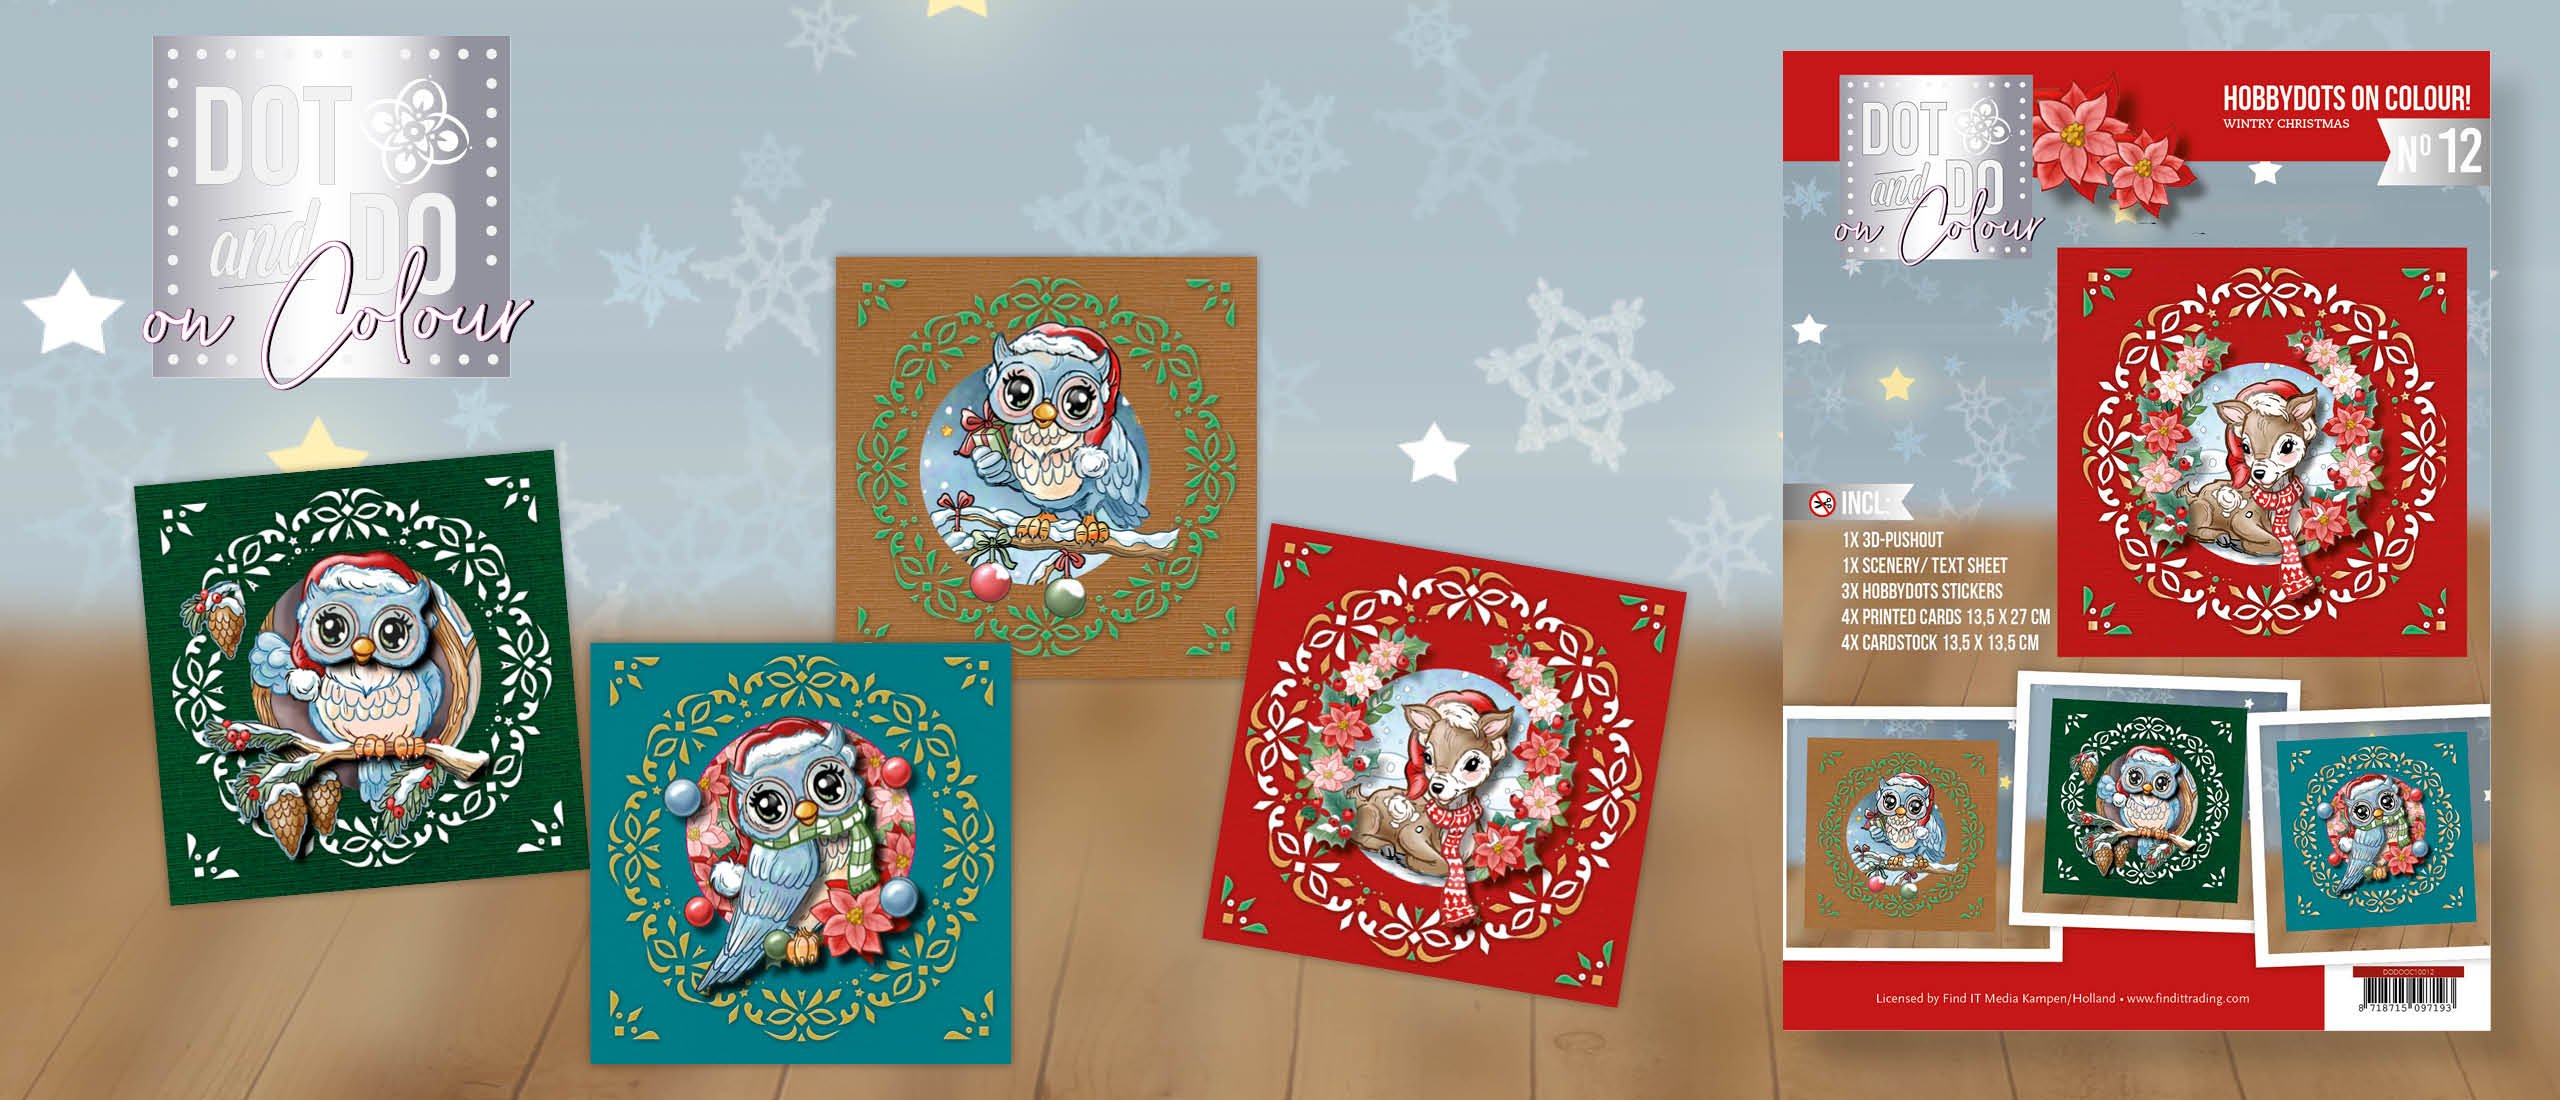 Dot and Do on Colour 12 Yvonne Creations Wintry Christmas